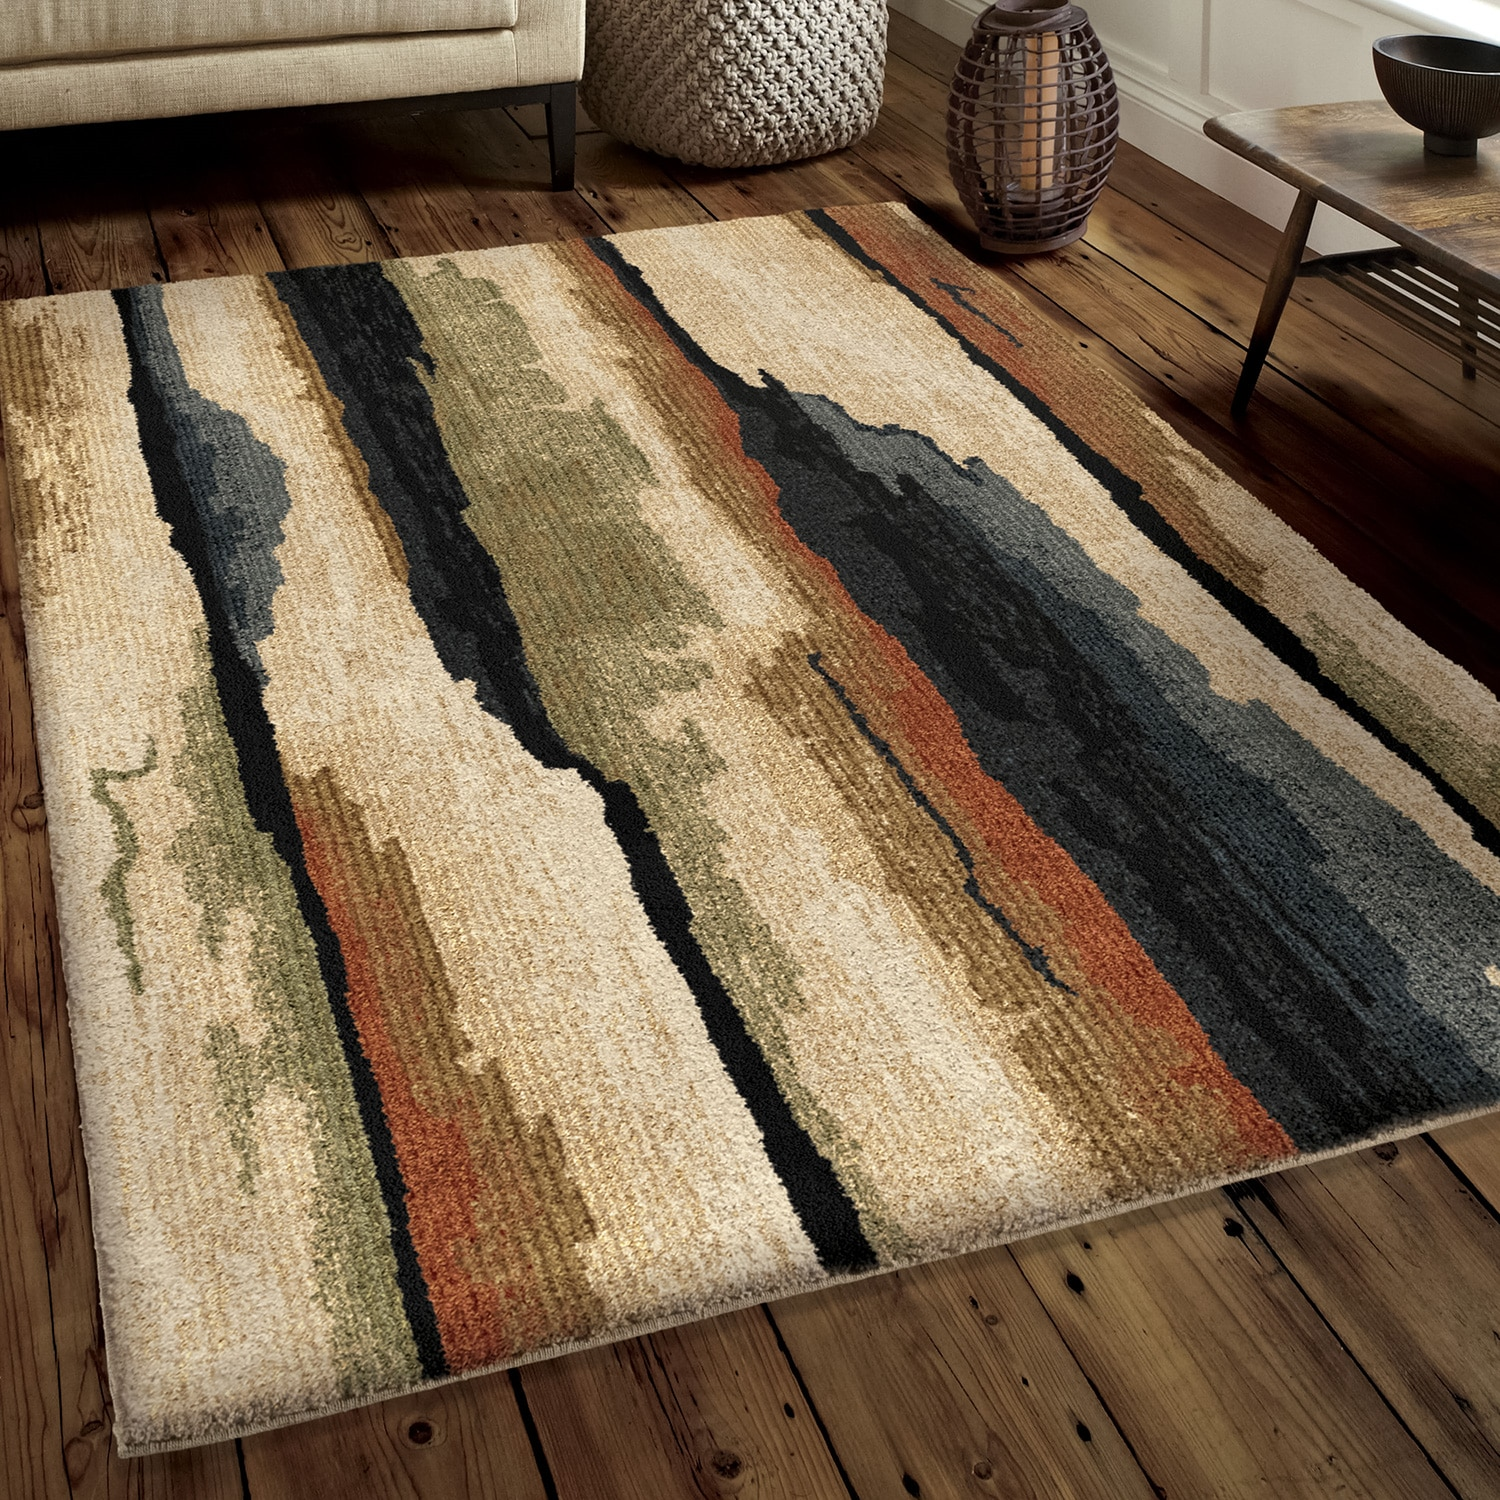 Rock Cliff Area Rug – 8' x 10'